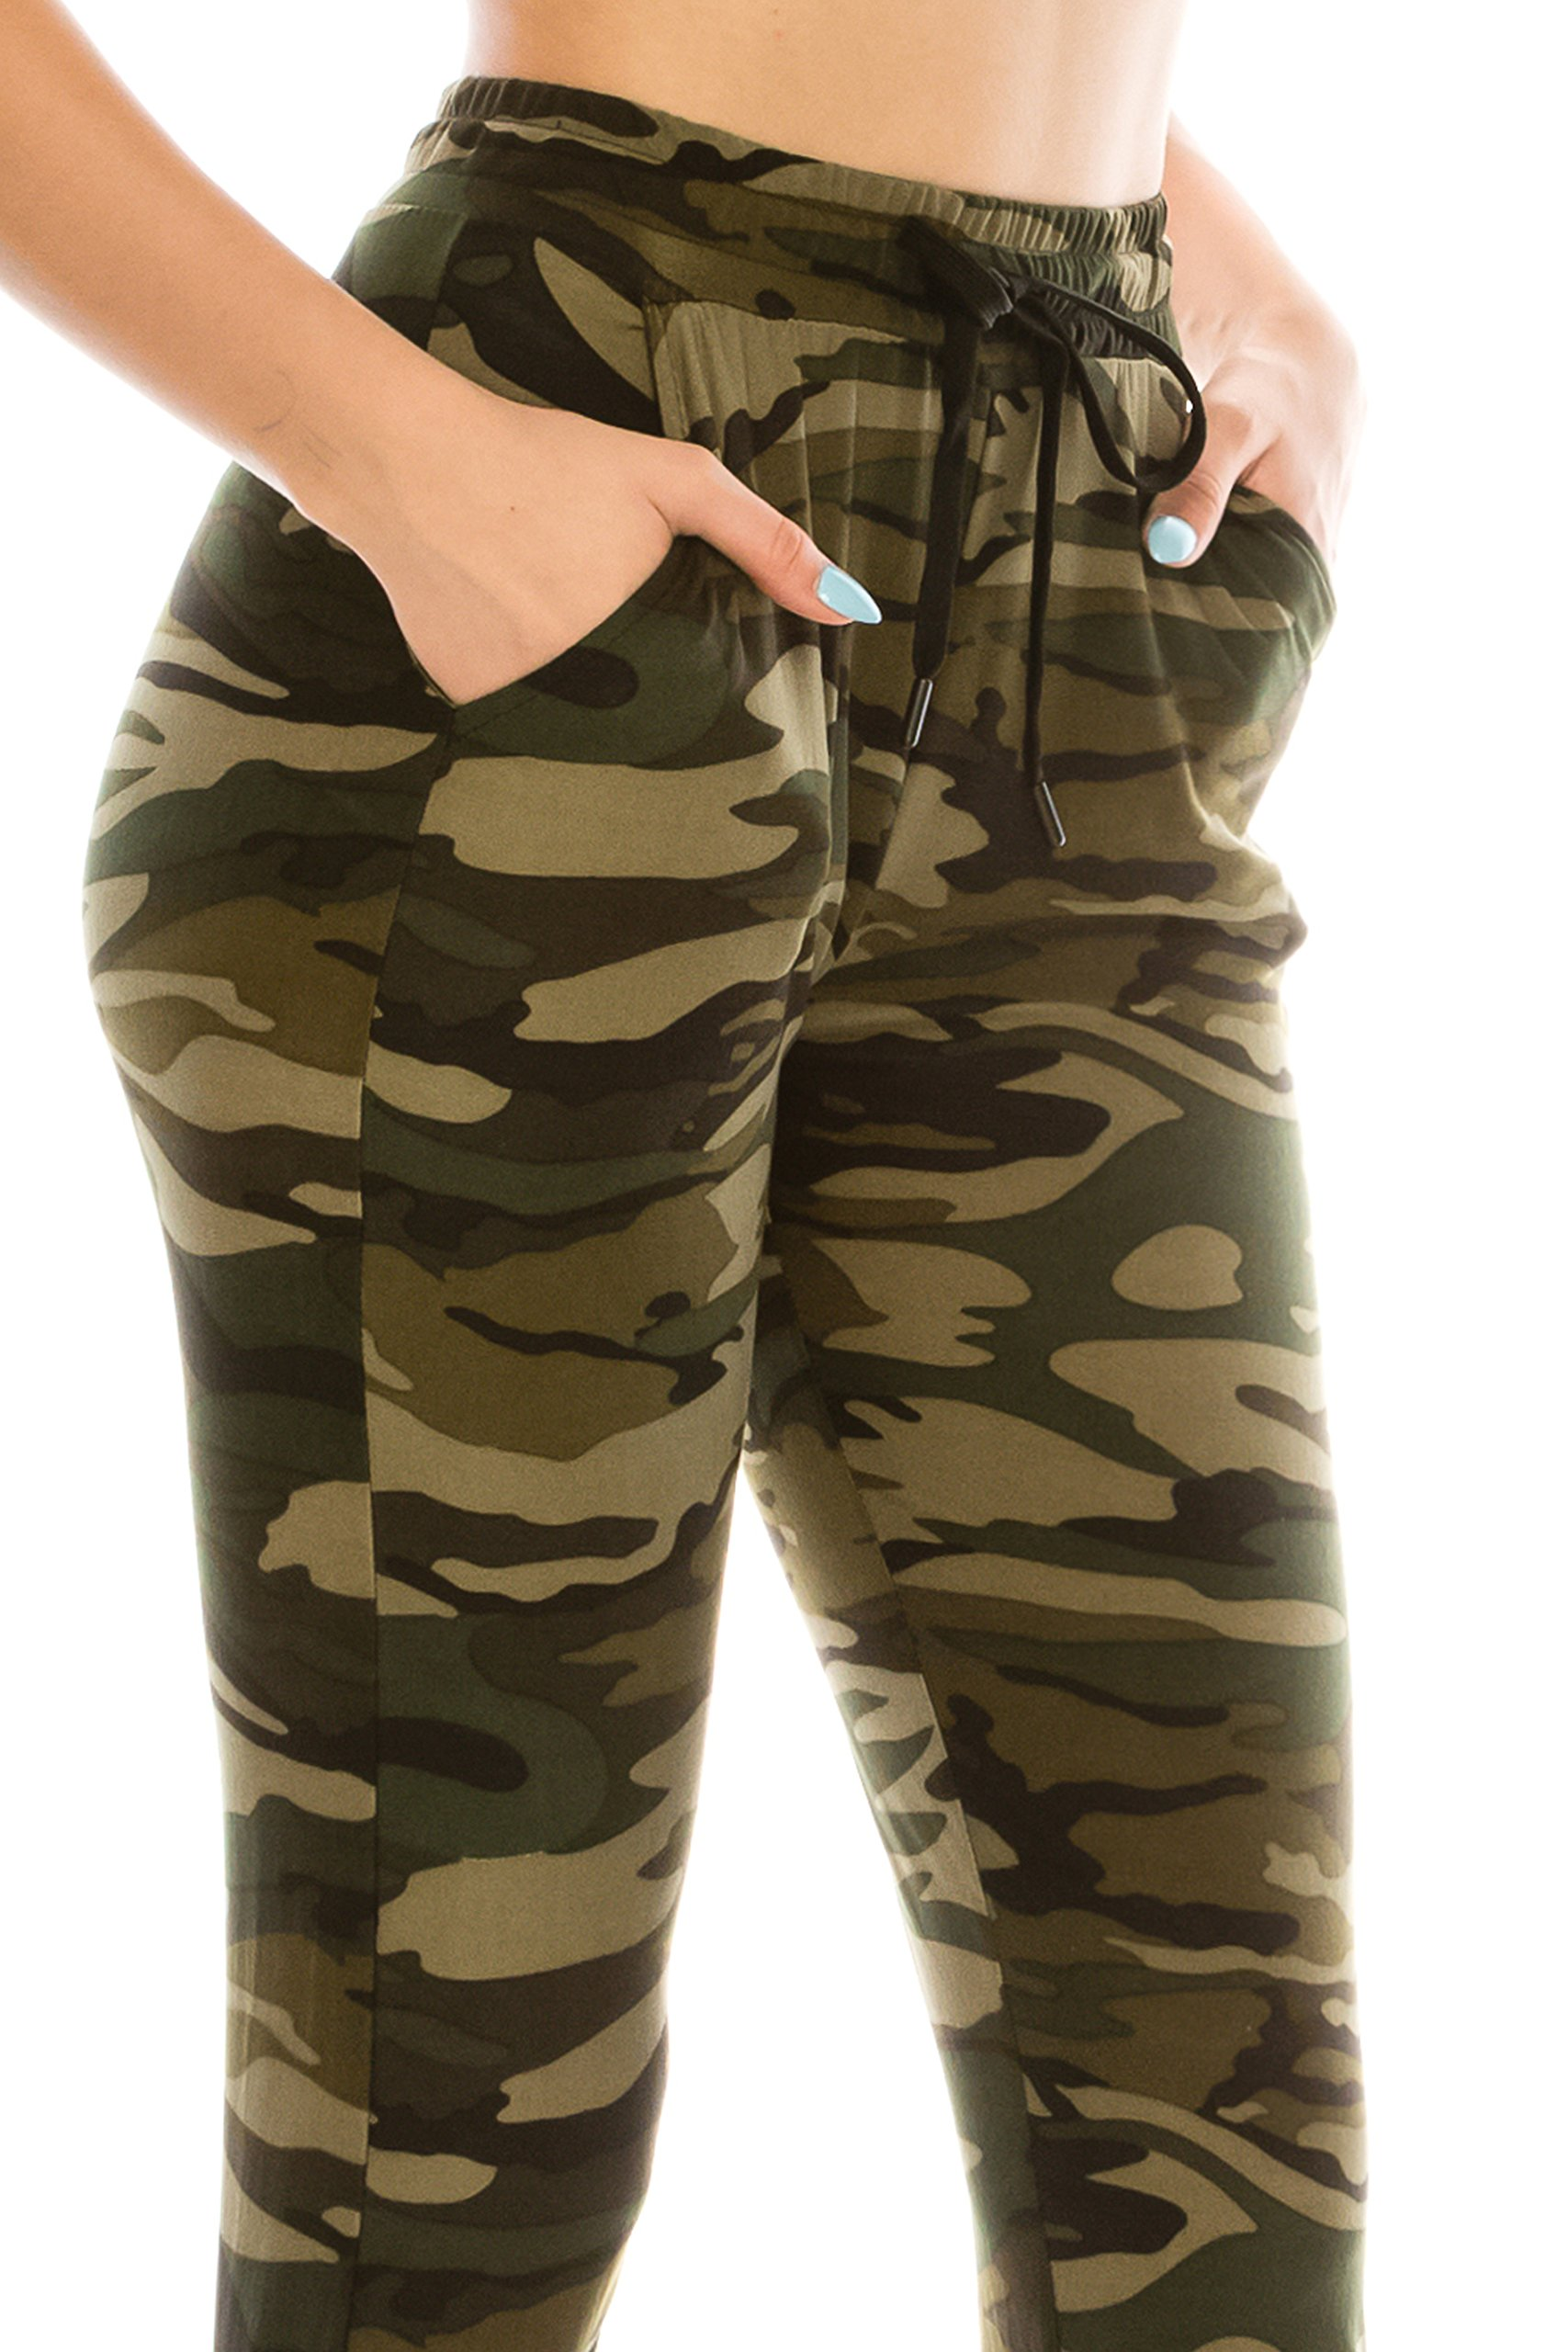 ALWAYS Women Drawstrings Jogger Sweatpants - Skinny Fit Premium Soft Stretch Camo Military Army Pockets Pants S/M by ALWAYS (Image #4)